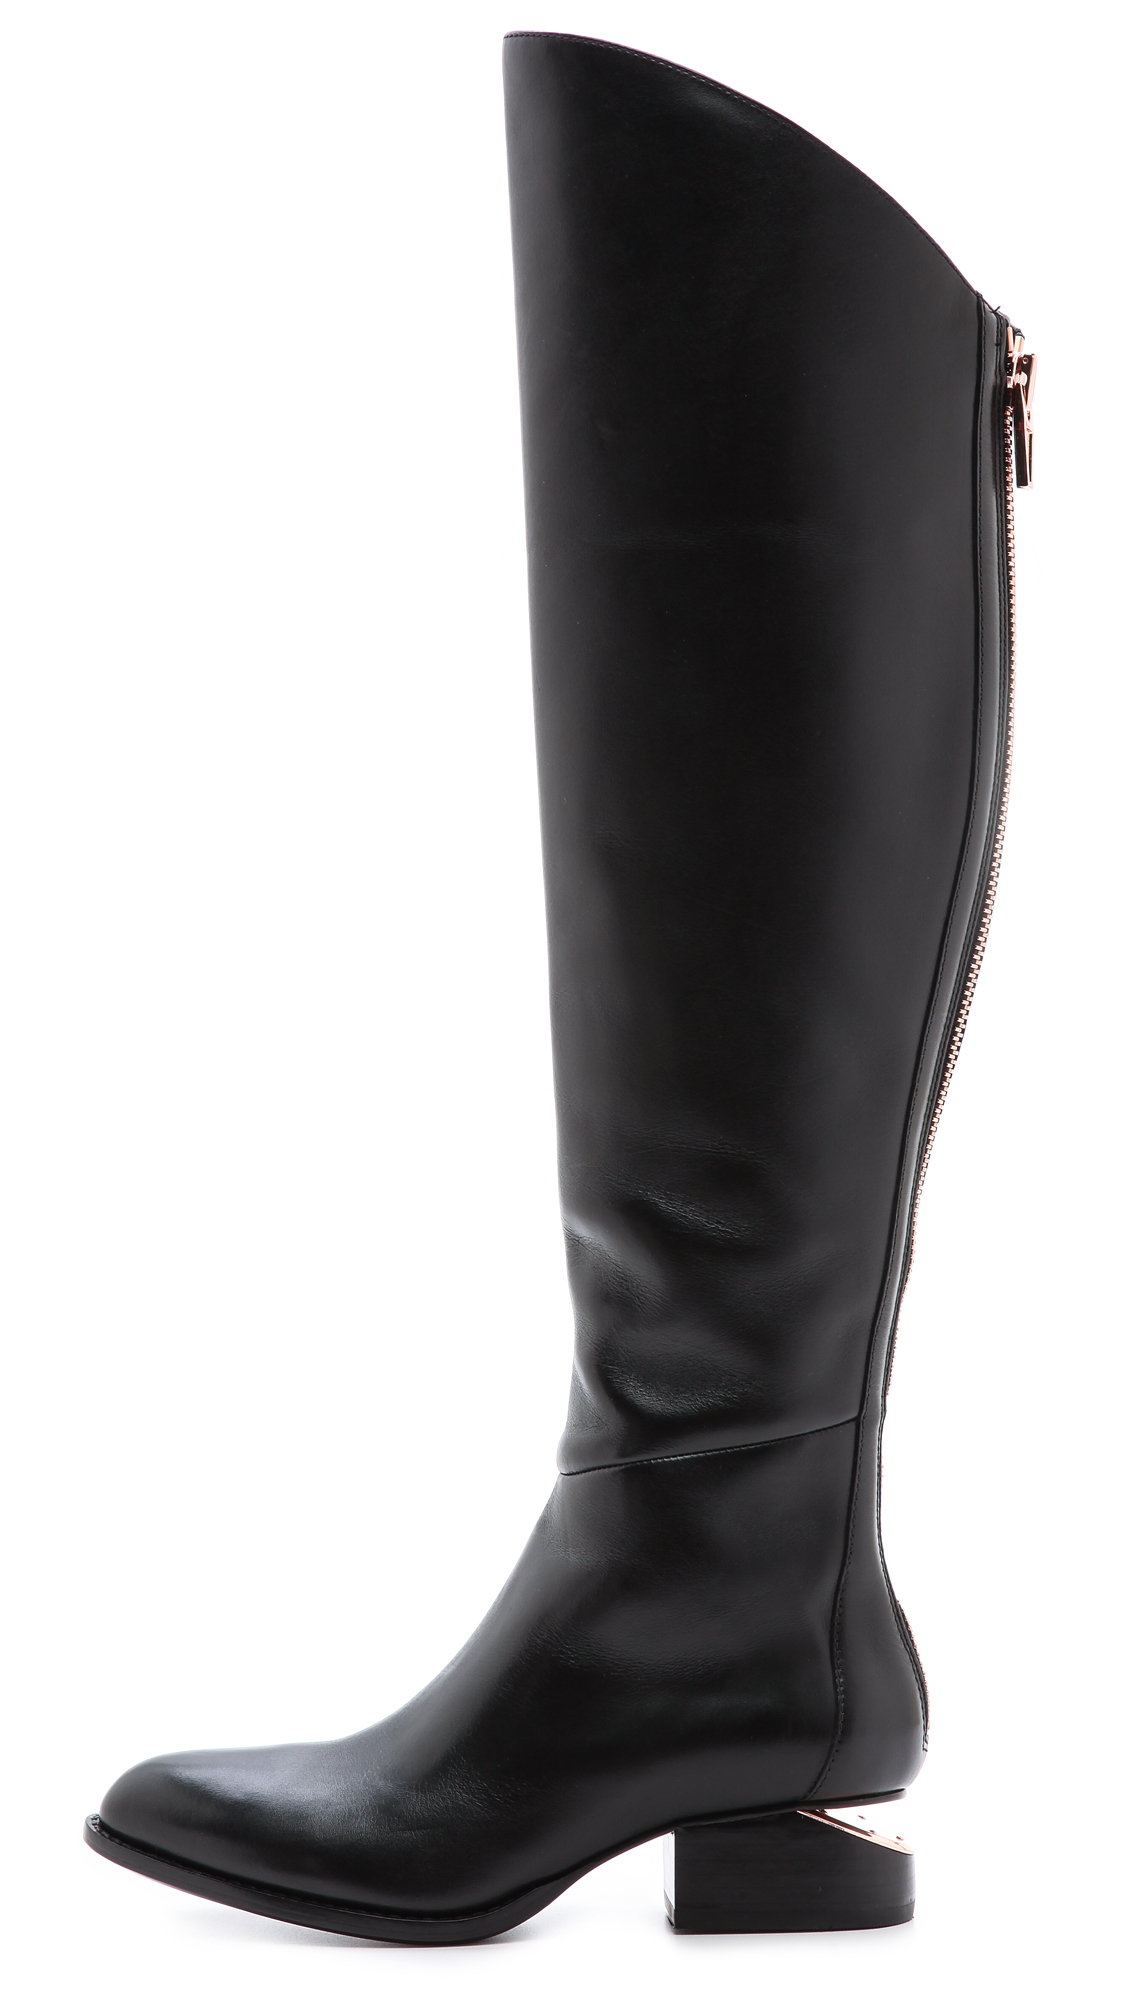 Alexander wang Sigrid Tall Boots with Rose Gold Hardware Black in ...